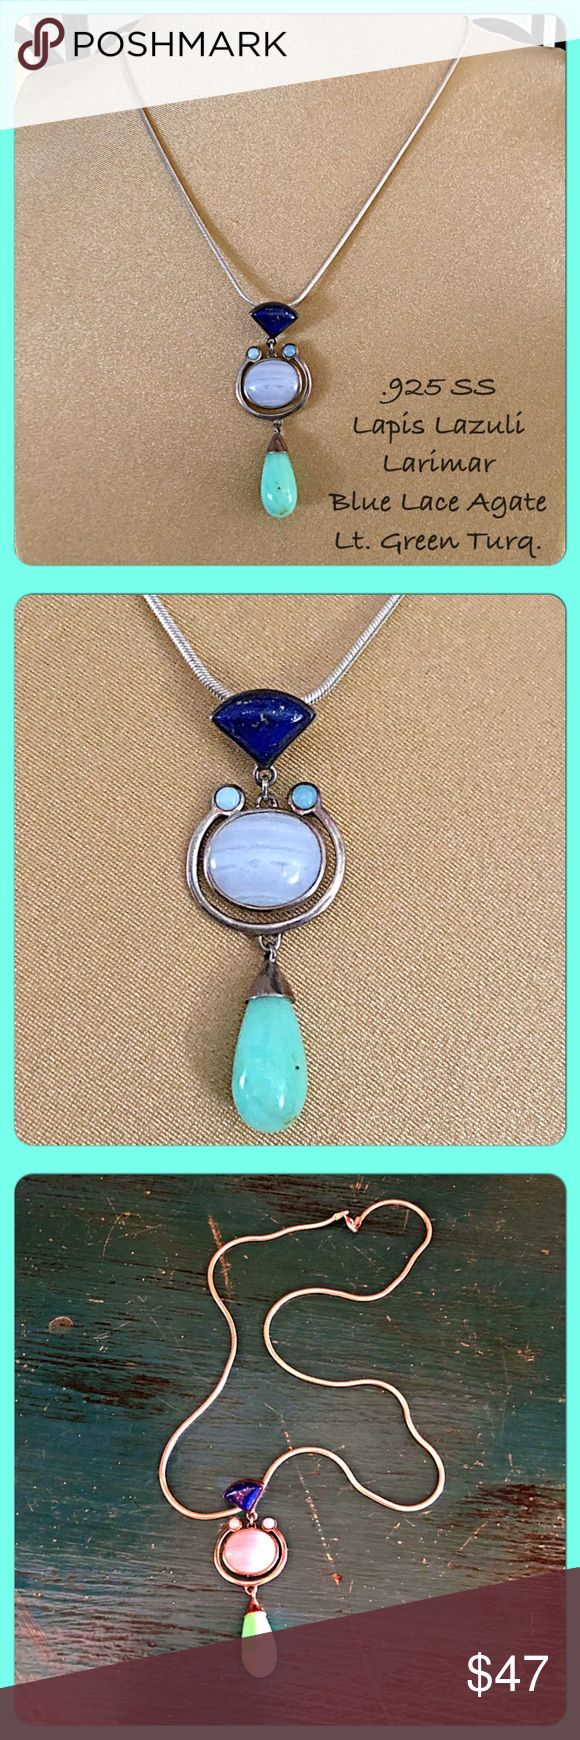 "VTG .925 SS, Semi-Precious Stones Pendant This is a beautiful vintage pendant with a contemporary look. There is a triangle shaped Lapis stone, 2 small round Larimar, blue oval lace agate, and light green turquoise teardrop stones. All set in solid .925 sterling silver. Drop is about 2"". I'm including an 18"" classic .925 sterling silver Italian snake chain. Lobster claw clasp. The pendant & chain are both about 19-20 years old but still in excellent condition. Approx. 18-20g total wt. FIRM…"